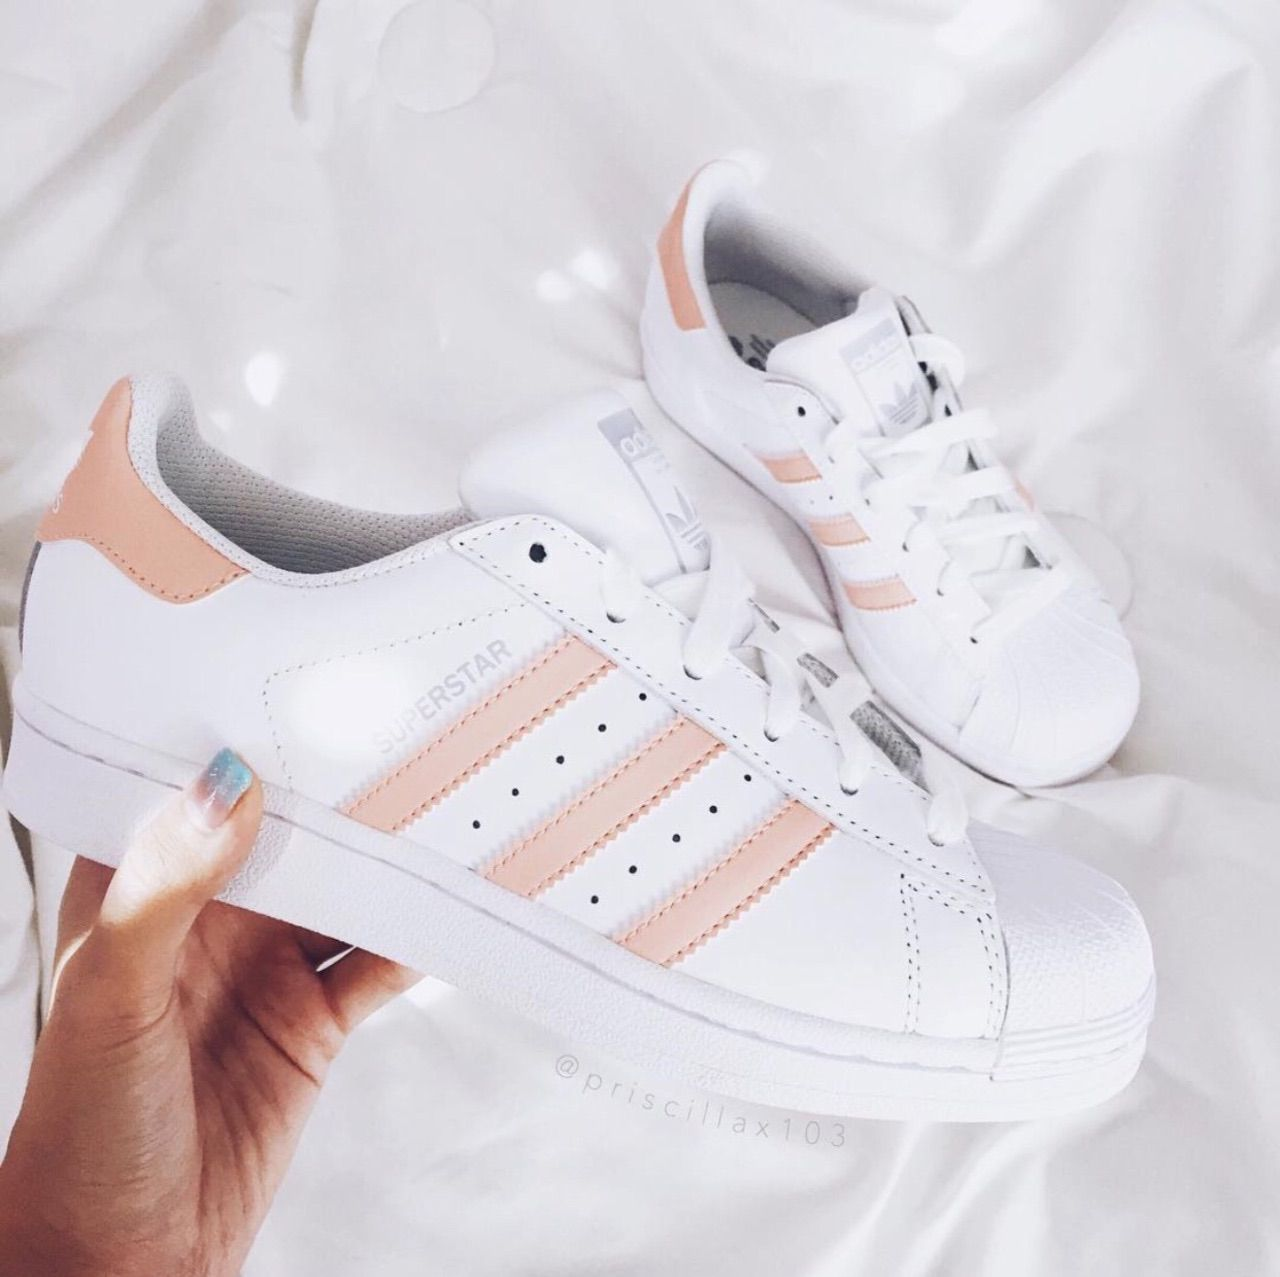 Adidas superstar | Chaussures adidas, Soulier adidas et ...